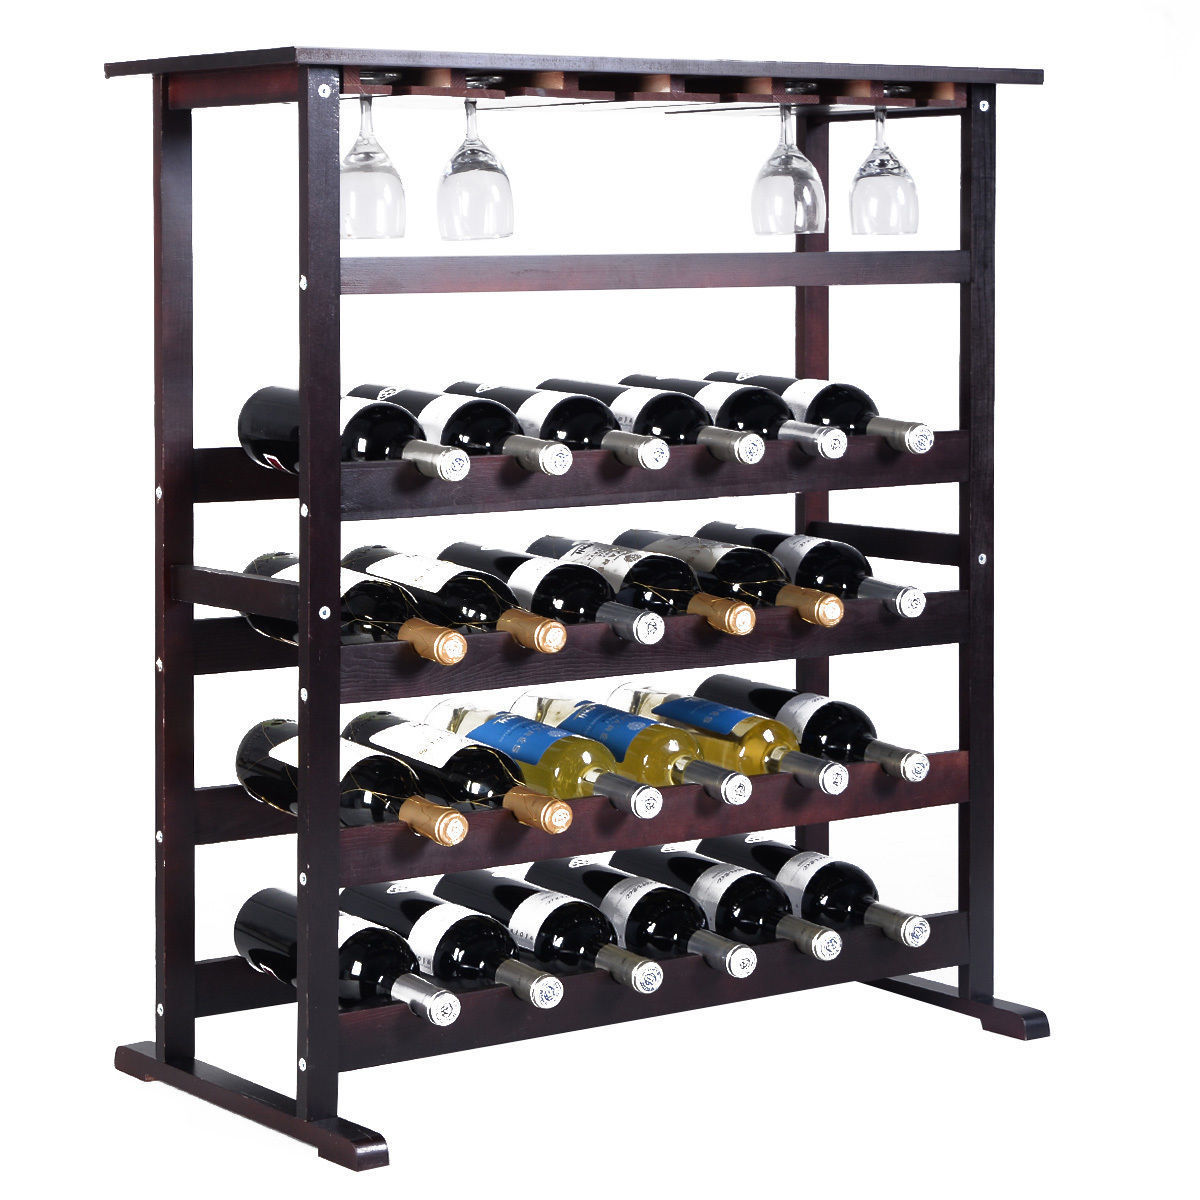 Costway 24 Bottle Wood Wine Rack Holder Storage Shelf Display w/ Glass Hanger